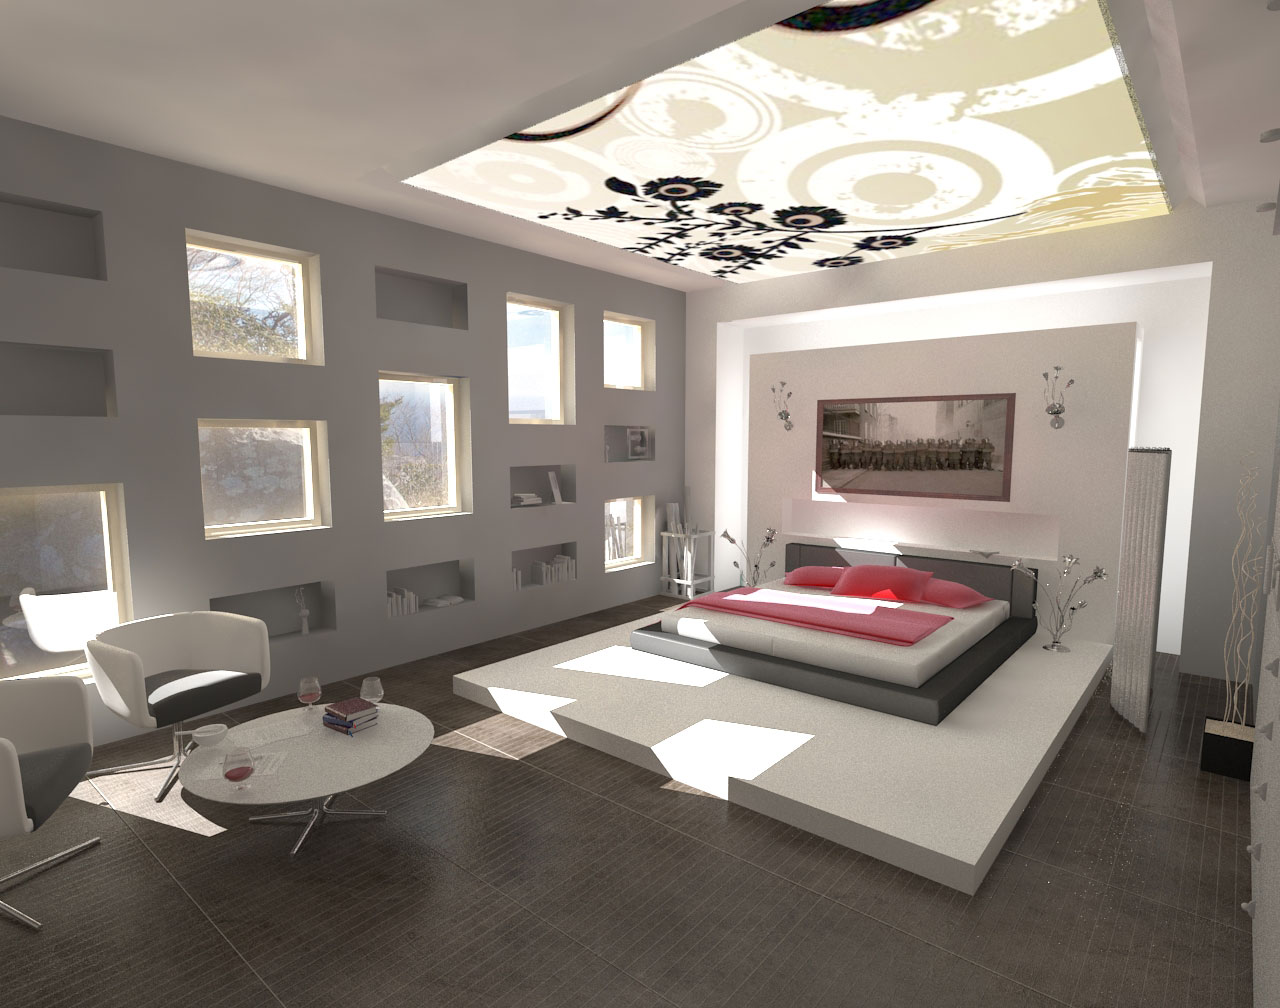 Great Modern Bedroom Interior Design Ideas 1280 x 1008 · 183 kB · jpeg